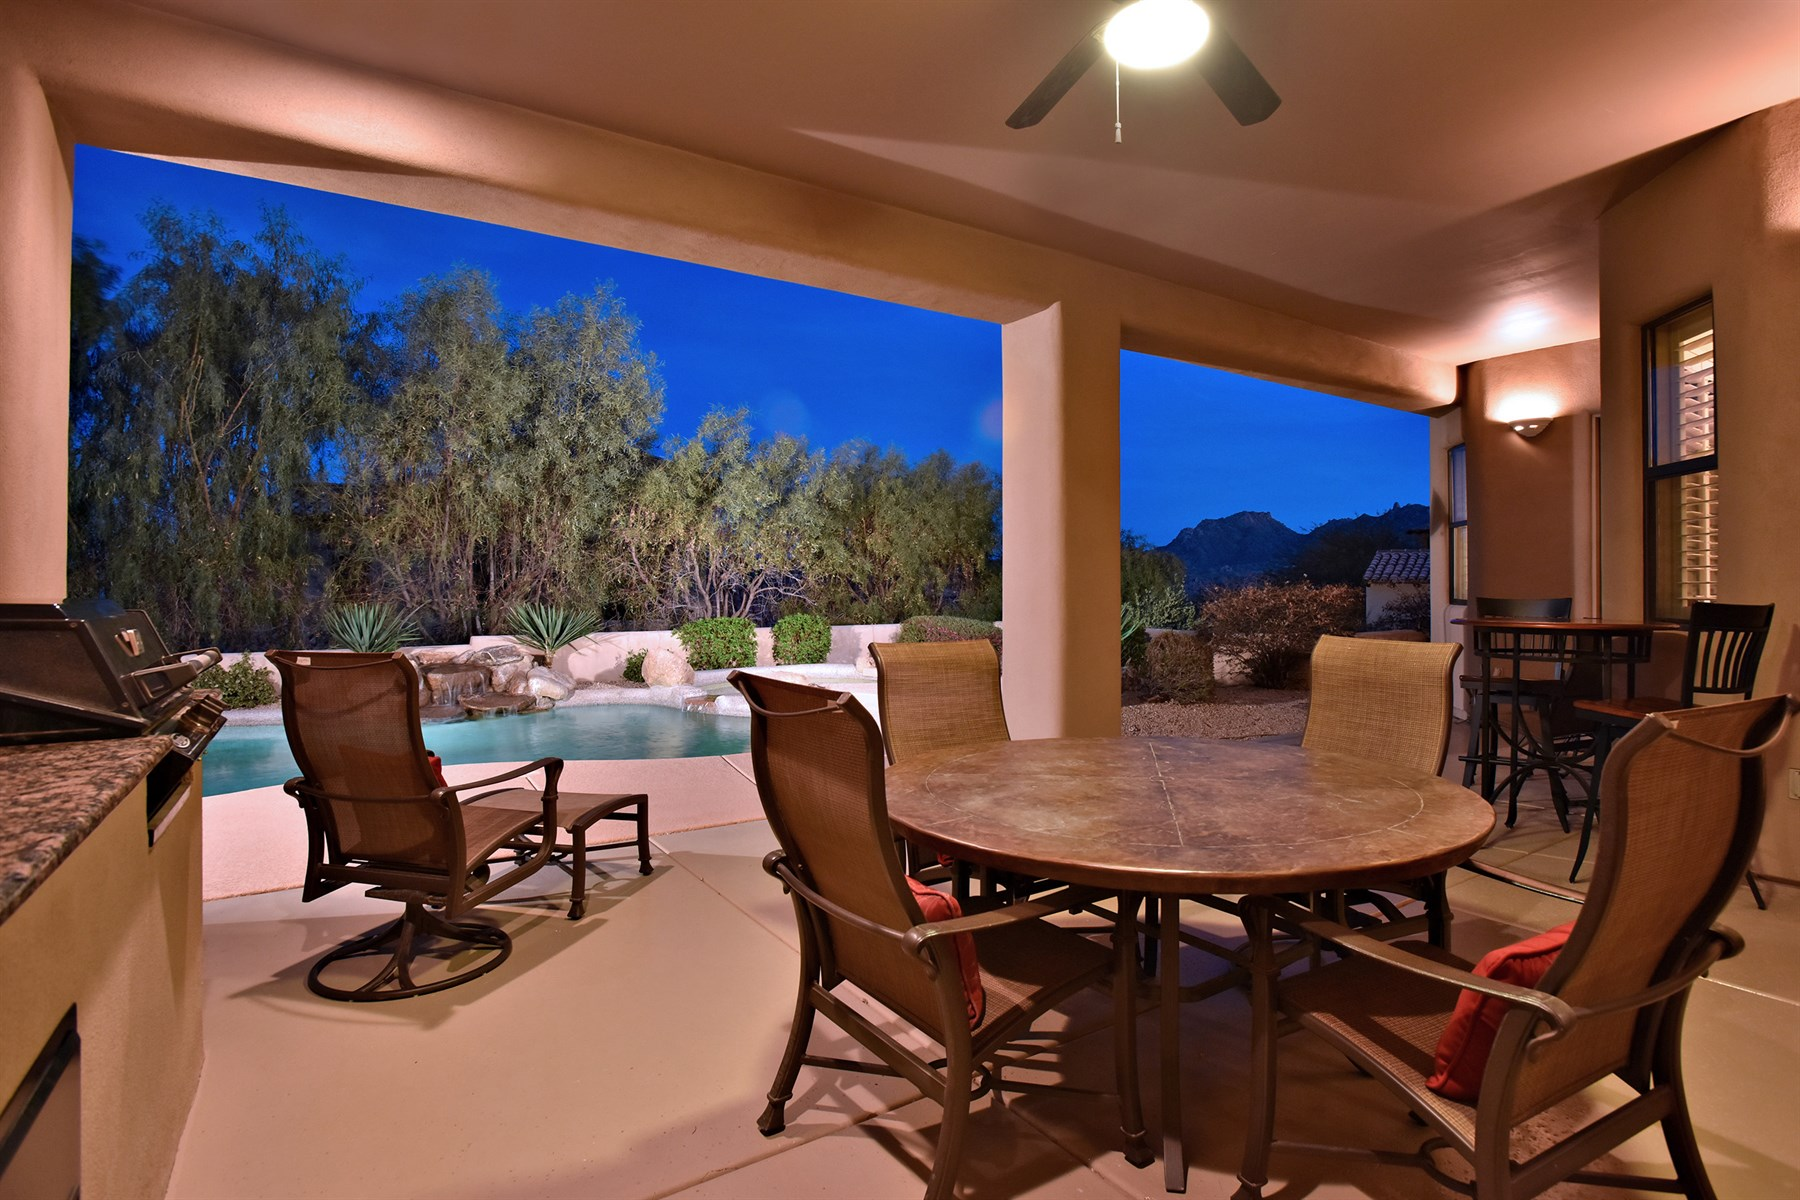 Single Family Home for Sale at Troon Home with The Best Of Indoor/Outdoor Living For Which Scottsdale Is Known 25341 N 113th Way Scottsdale, Arizona 85255 United States